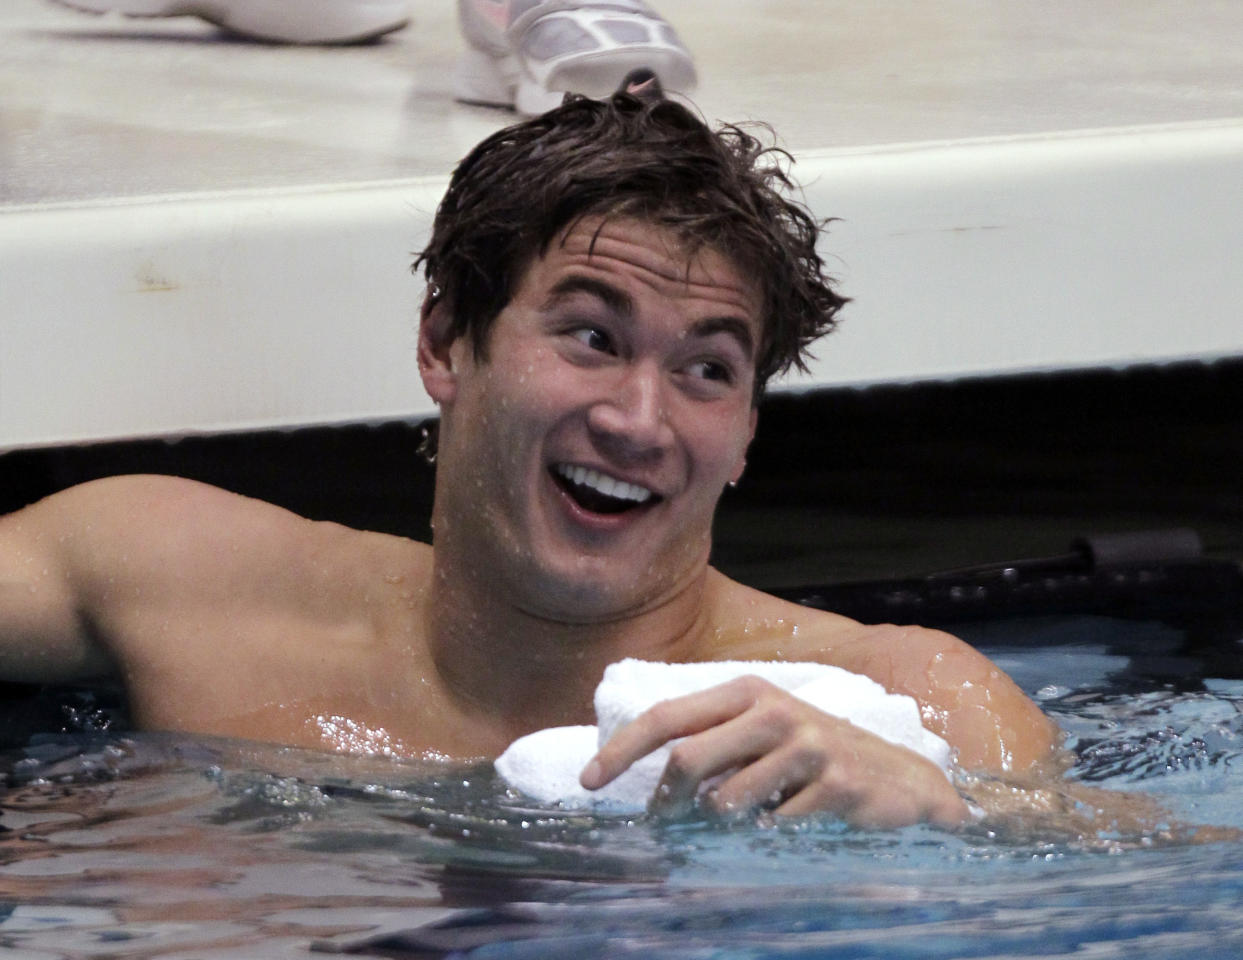 Nathan Adrian laughs as he looks at his time on the scoreboard after winning the men's 100-meter freestyle event in 48.62 seconds at the Indianapolis Grand Prix swim meet in Indianapolis, Thursday, March 29, 2012. (AP Photo/Michael Conroy)